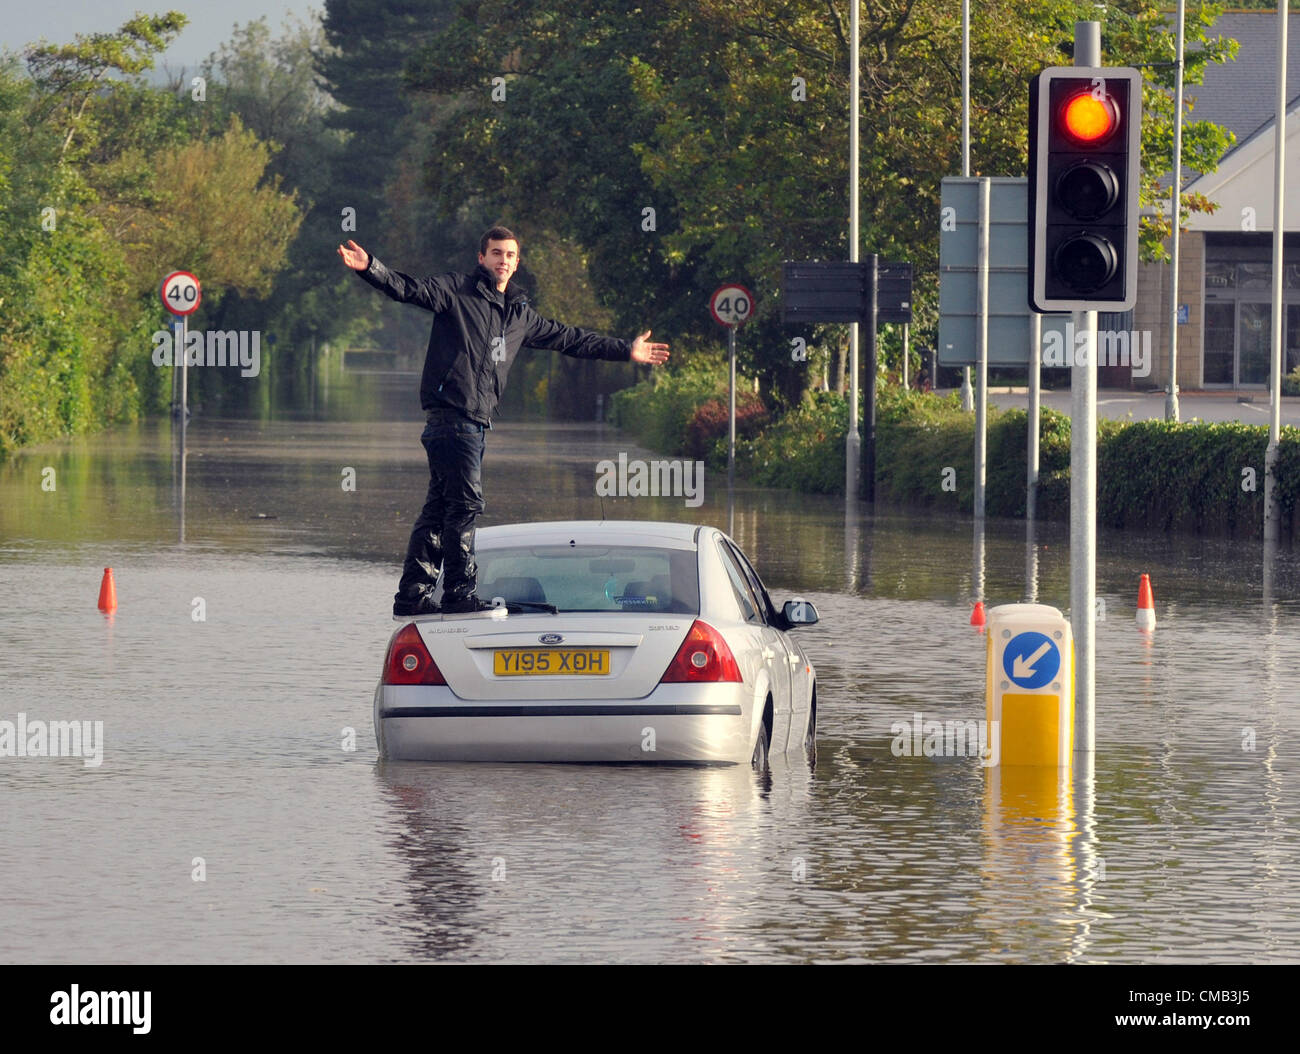 Dorset, UK. 8th July 2012.One young driver got caught out by the floods in the town centre at Weymouth. - Stock Image